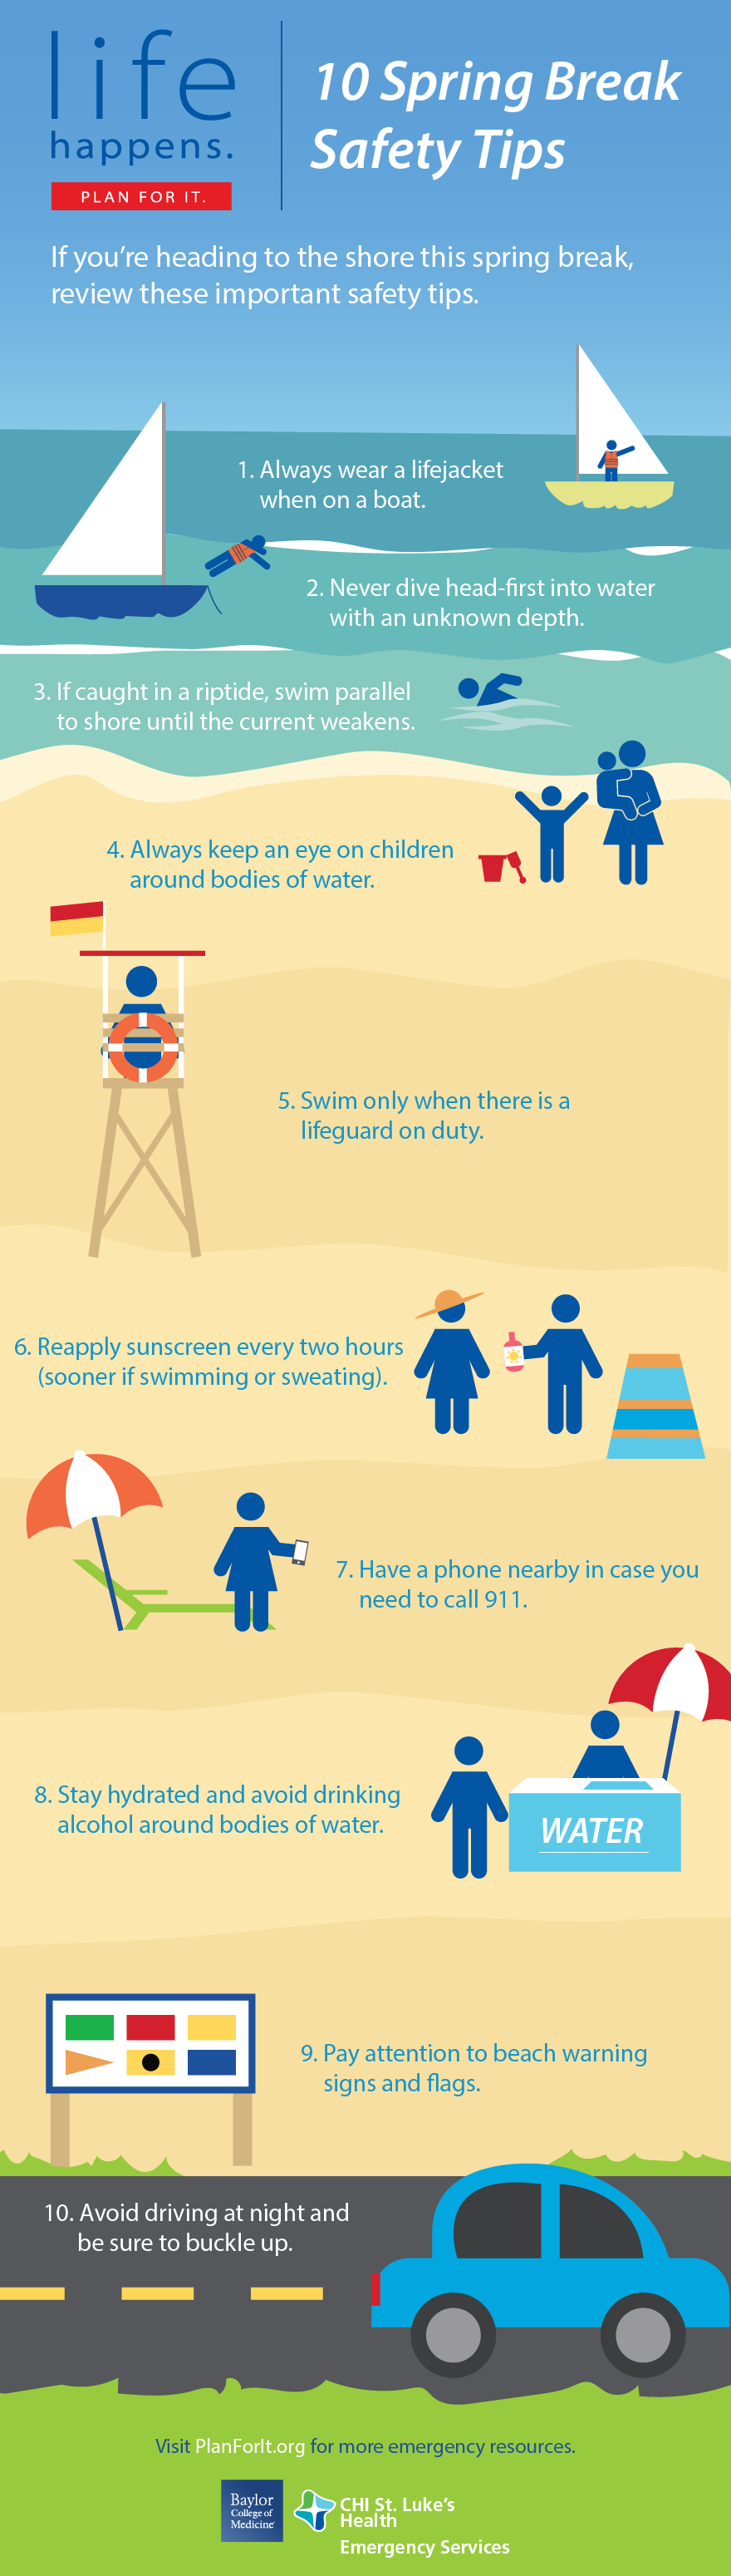 plan-for-it-spring-break-infographic-01.png